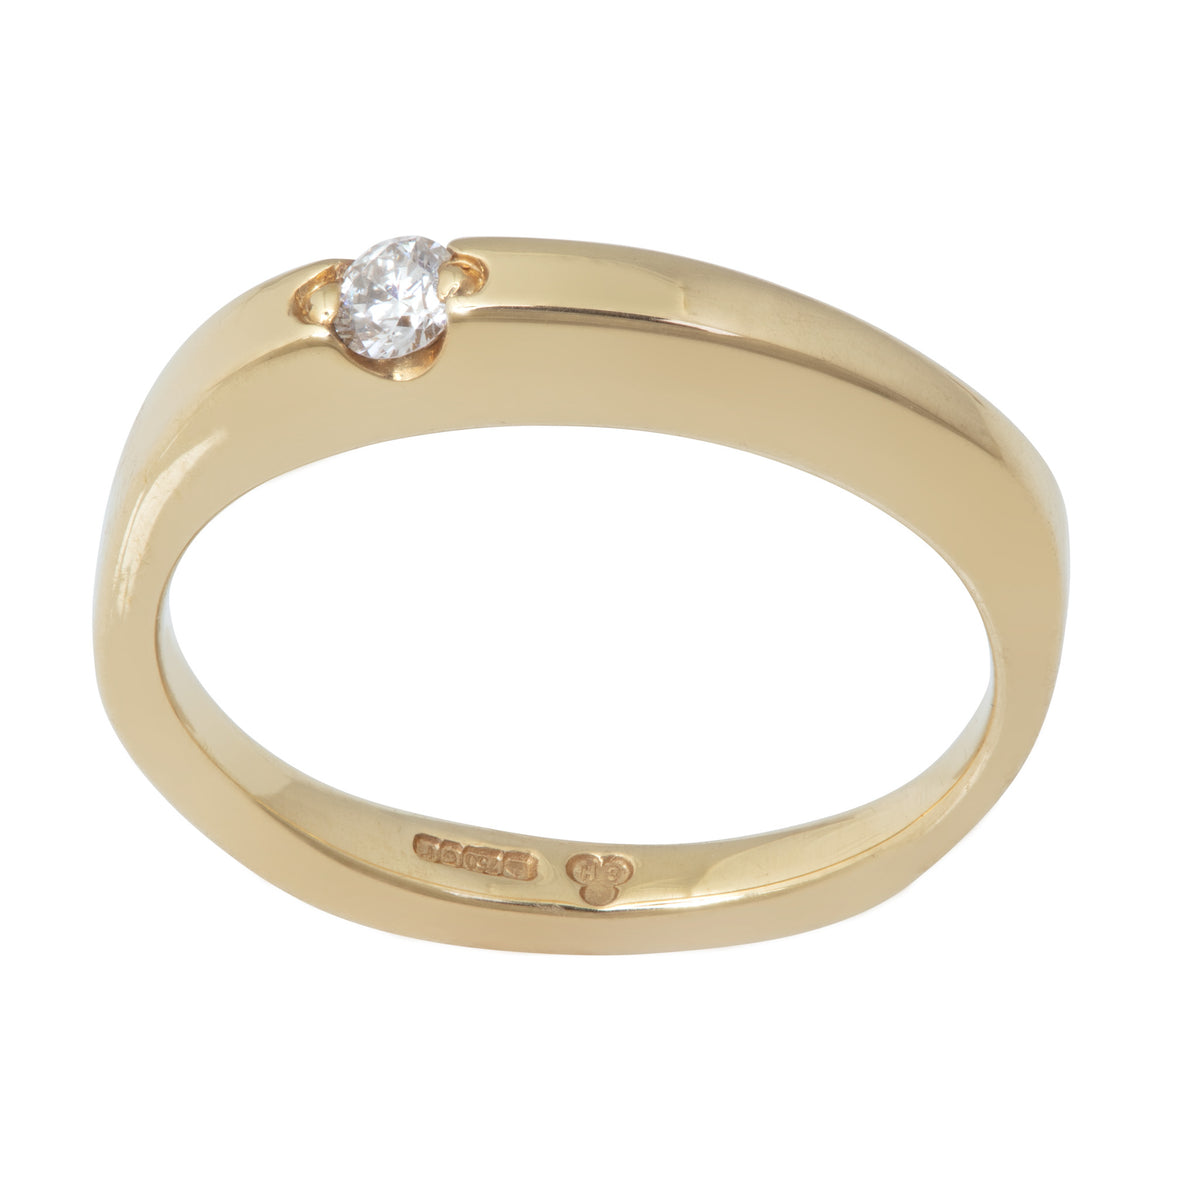 Floating Diamond Ring in 18ct Yellow Gold or 18ct White Gold